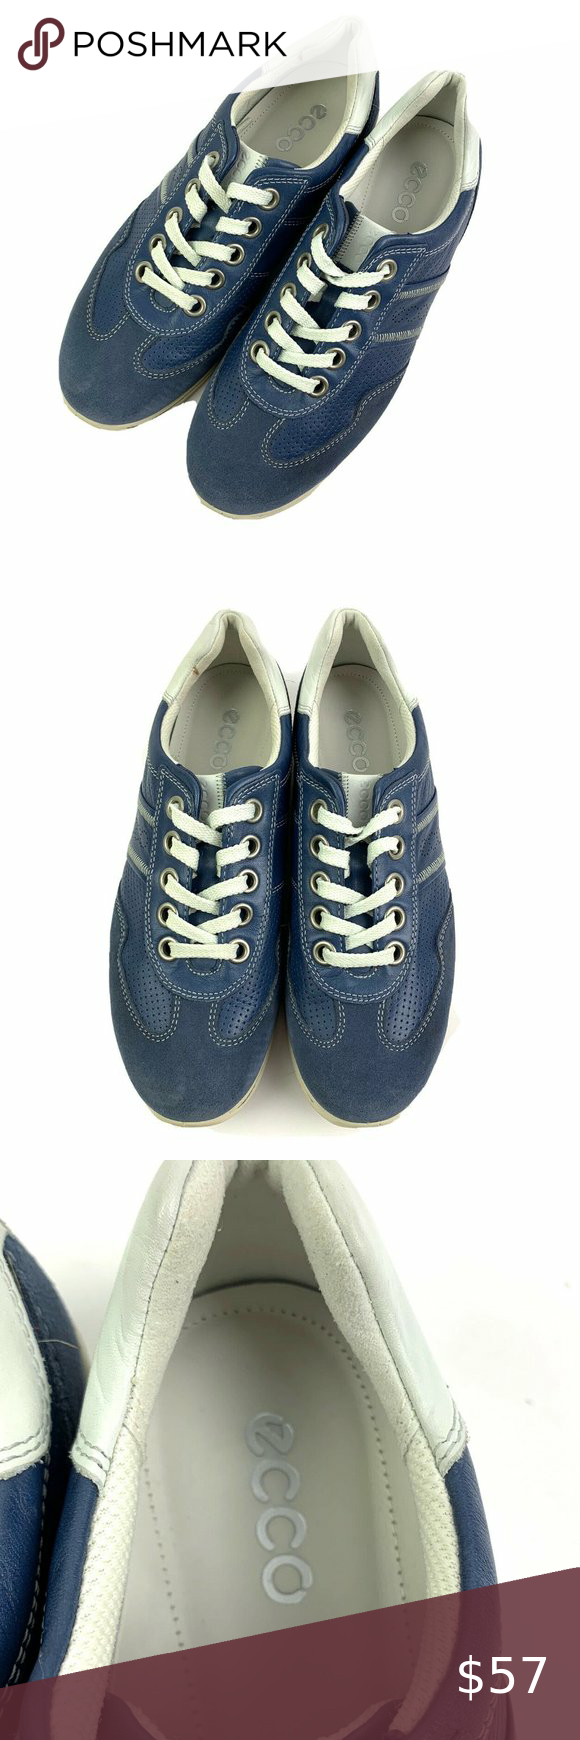 Ecco Womens Shoes 37 Blue Suede Leather